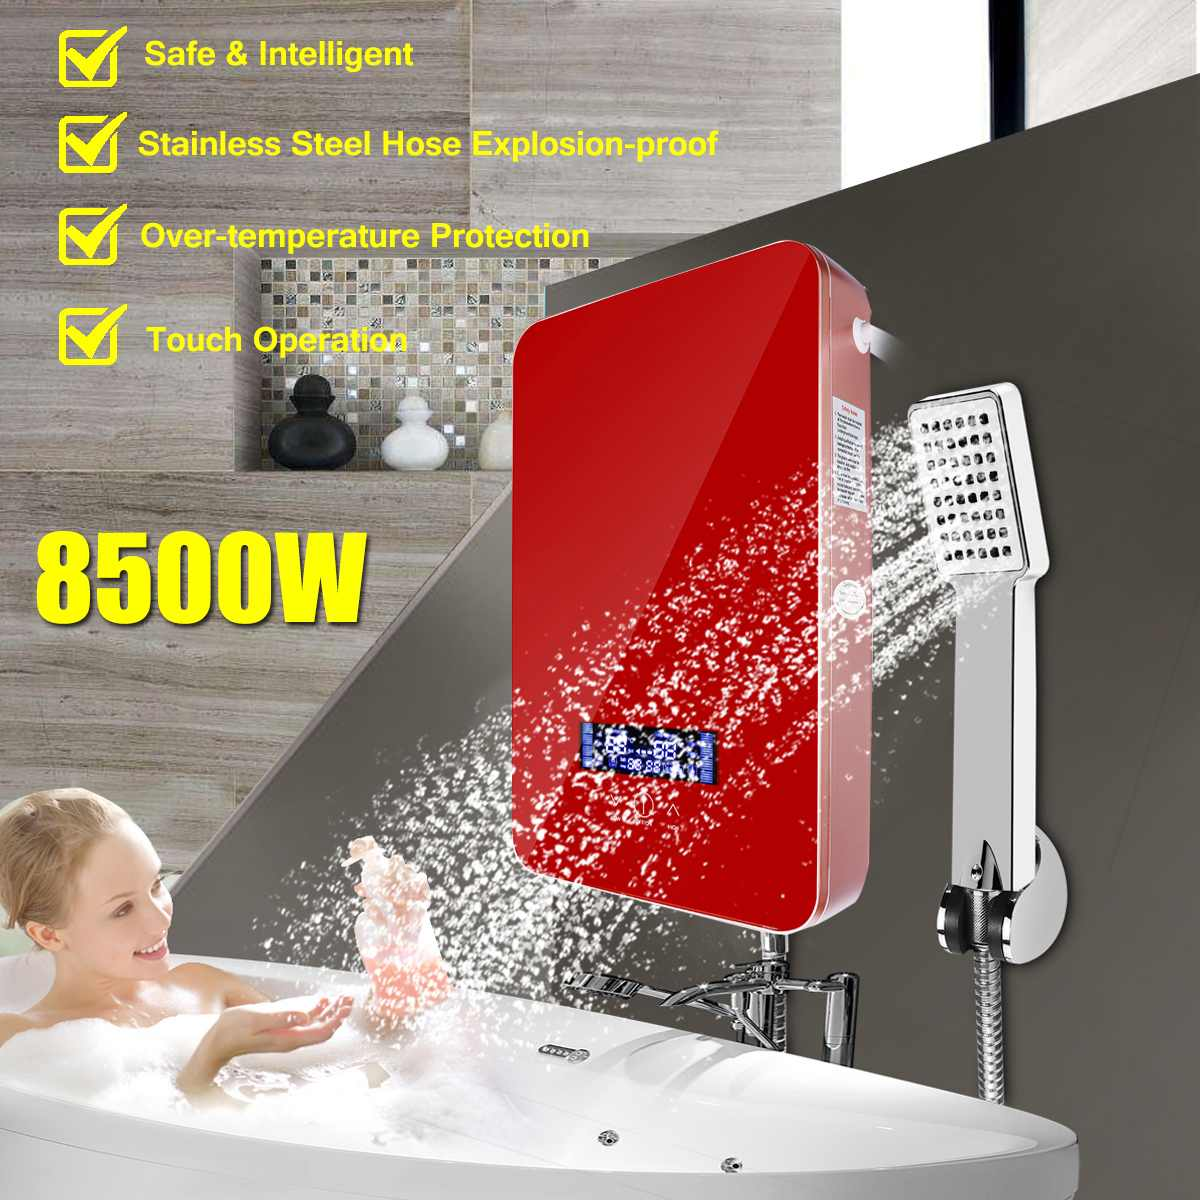 8500W 220V Tankless Instant Electric Hot Water Heater Boiler Bathroom Shower Set Safe And Intelligent Hung Up Touch Operation